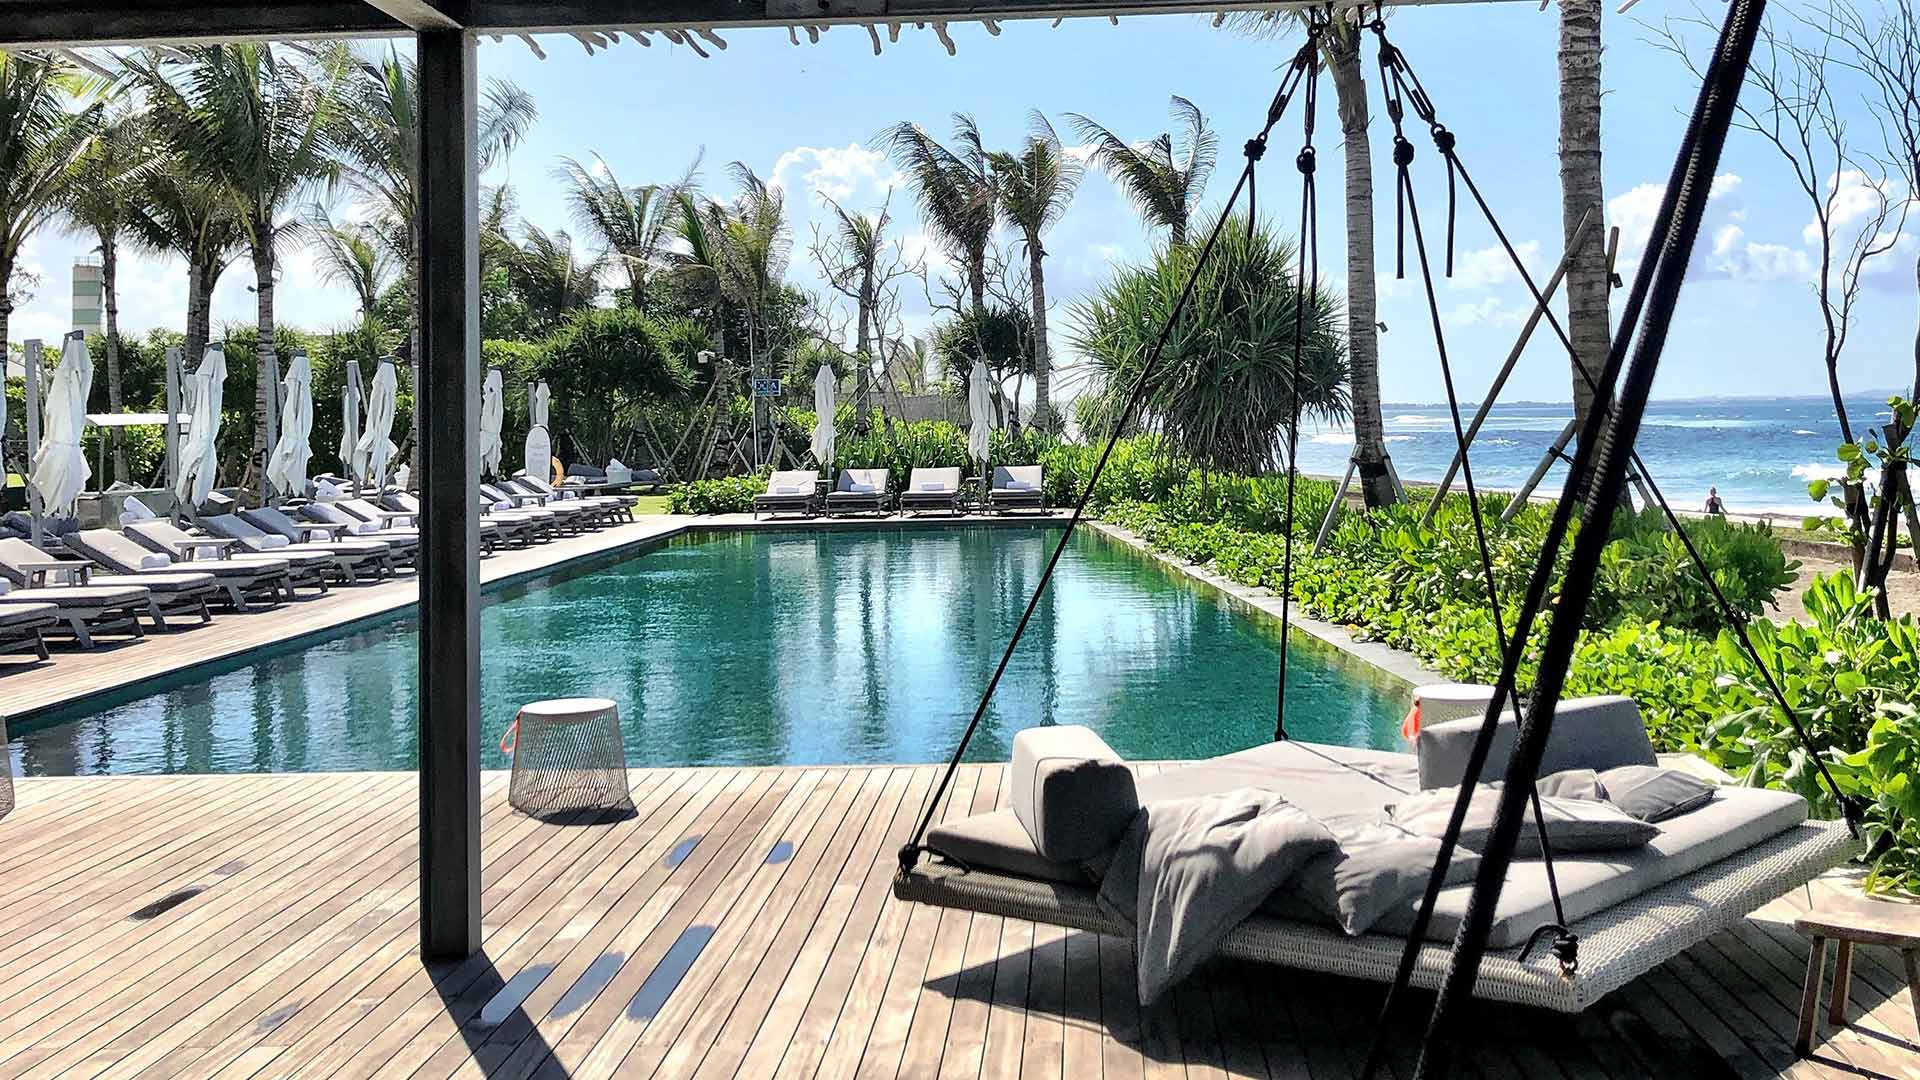 We Check Out The Bali Getaway Everyone S Talking About Wotif Insider